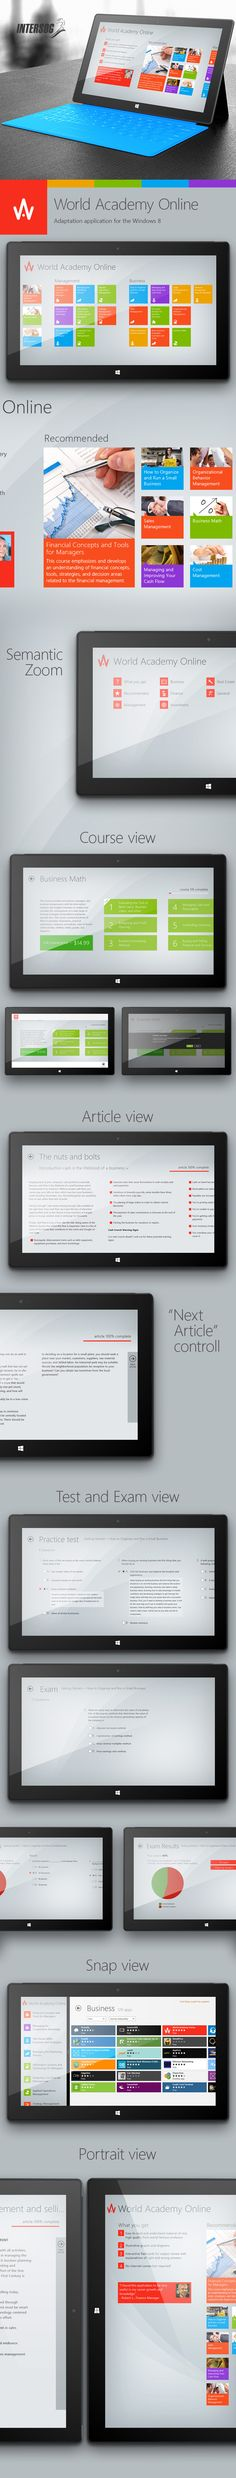 World Academy Online for Windows 8 (Adaptation app for the Windows 8 Modern UI) by Mikhail Nagliy